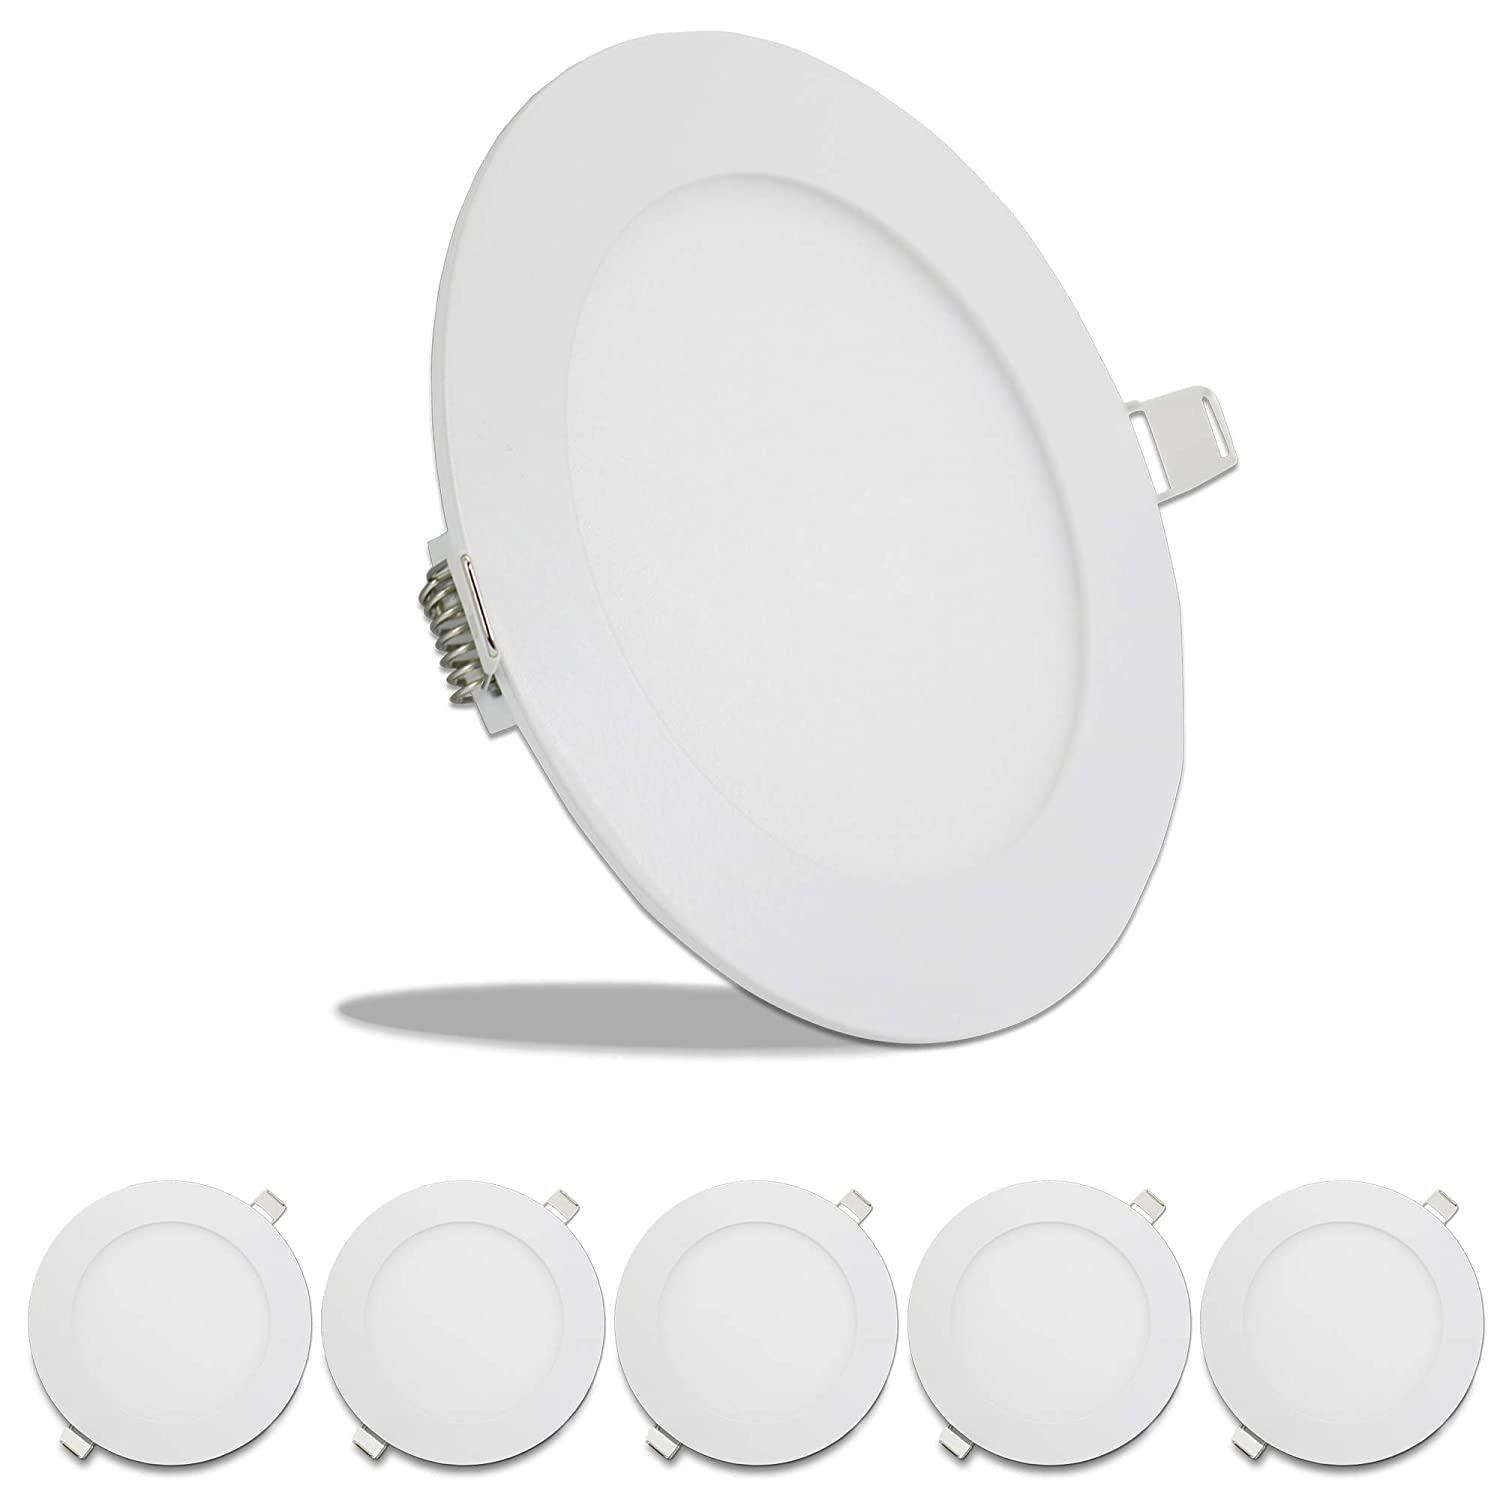 5 Pack Leisure LED RV Boat Recessed Ceiling Light 720 Lumen Super Slim LED Panel Light DC 12V 5.75